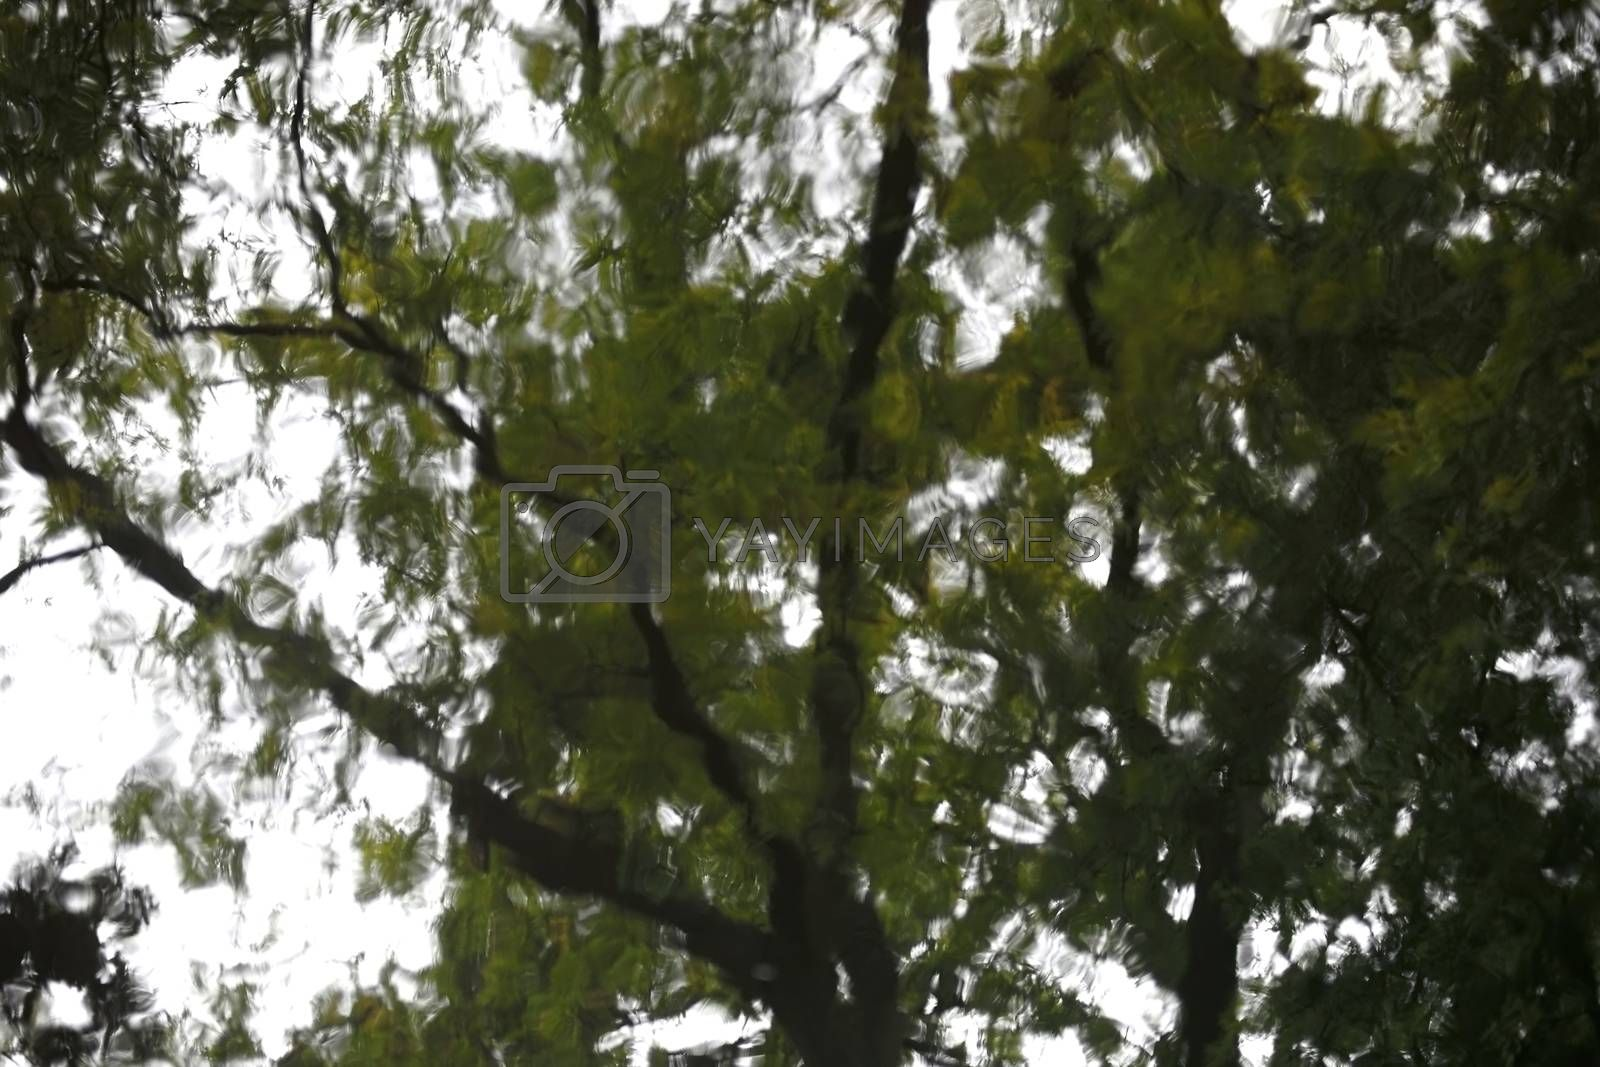 The abstract photograph of leaves roof and the treetop of a tree in the water.